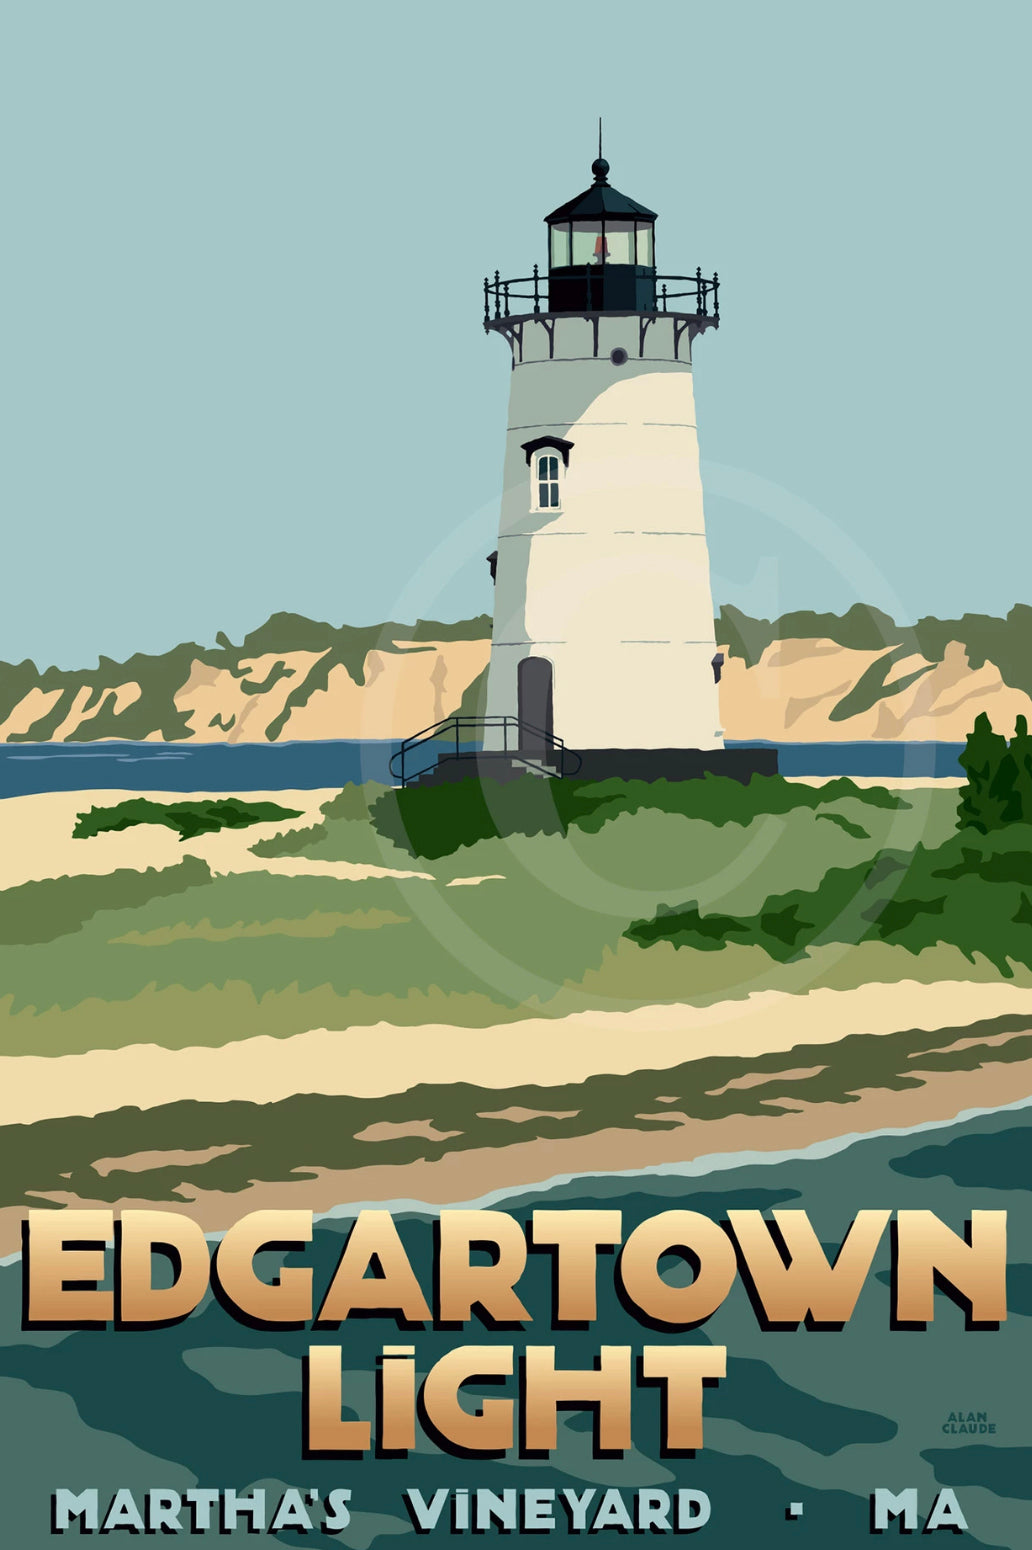 "Edgartown Light -MV Art Print 11"" x 17"" Travel Poster - MA"